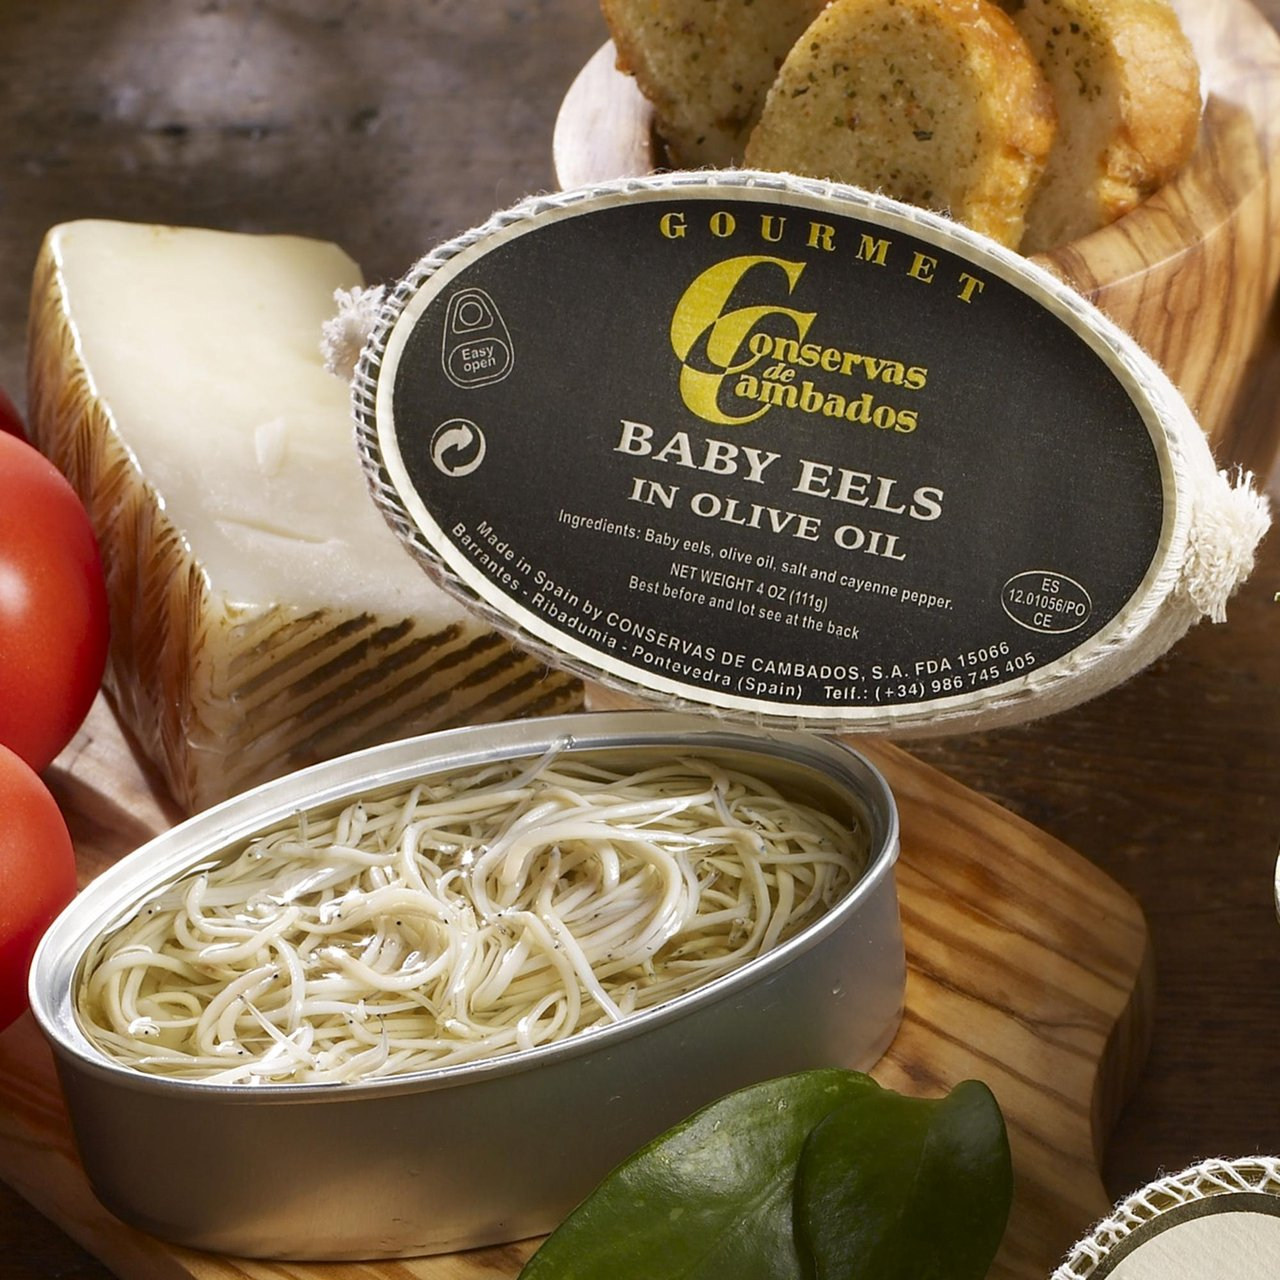 Amazon.com : Angulas - Tiny Baby Eels in Olive Oil : Grocery & Gourmet Food